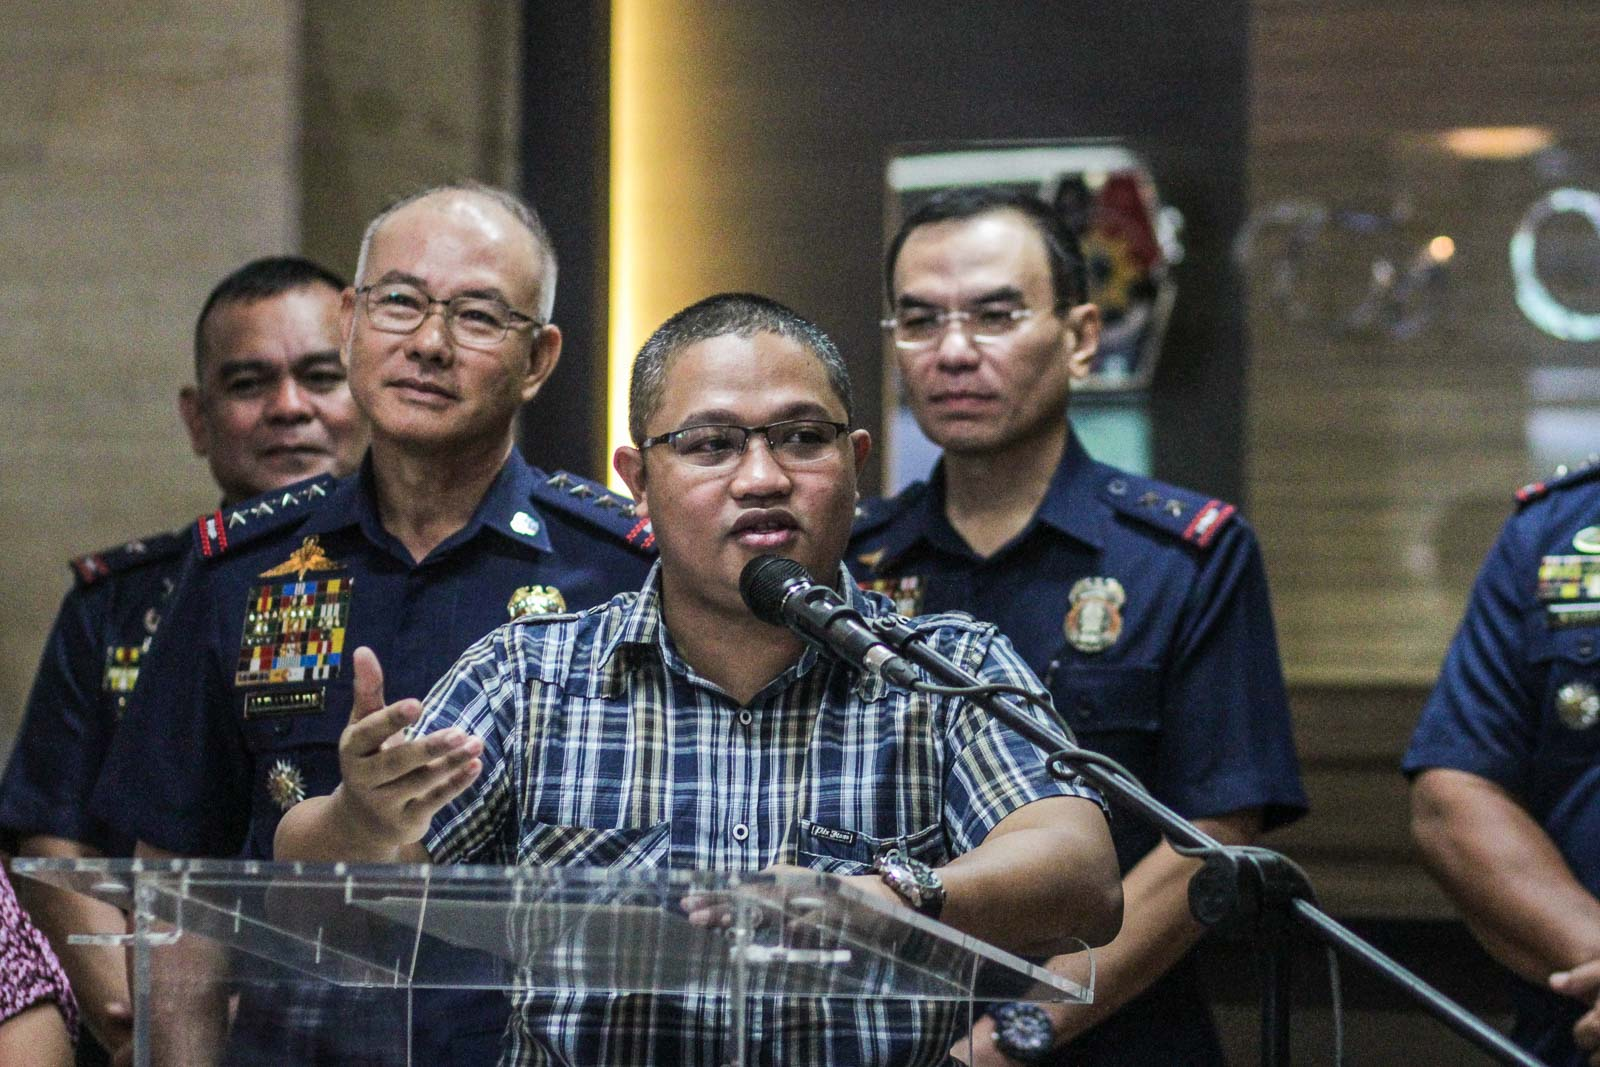 After calling him a liar, PNP hosts Bikoy's press briefing